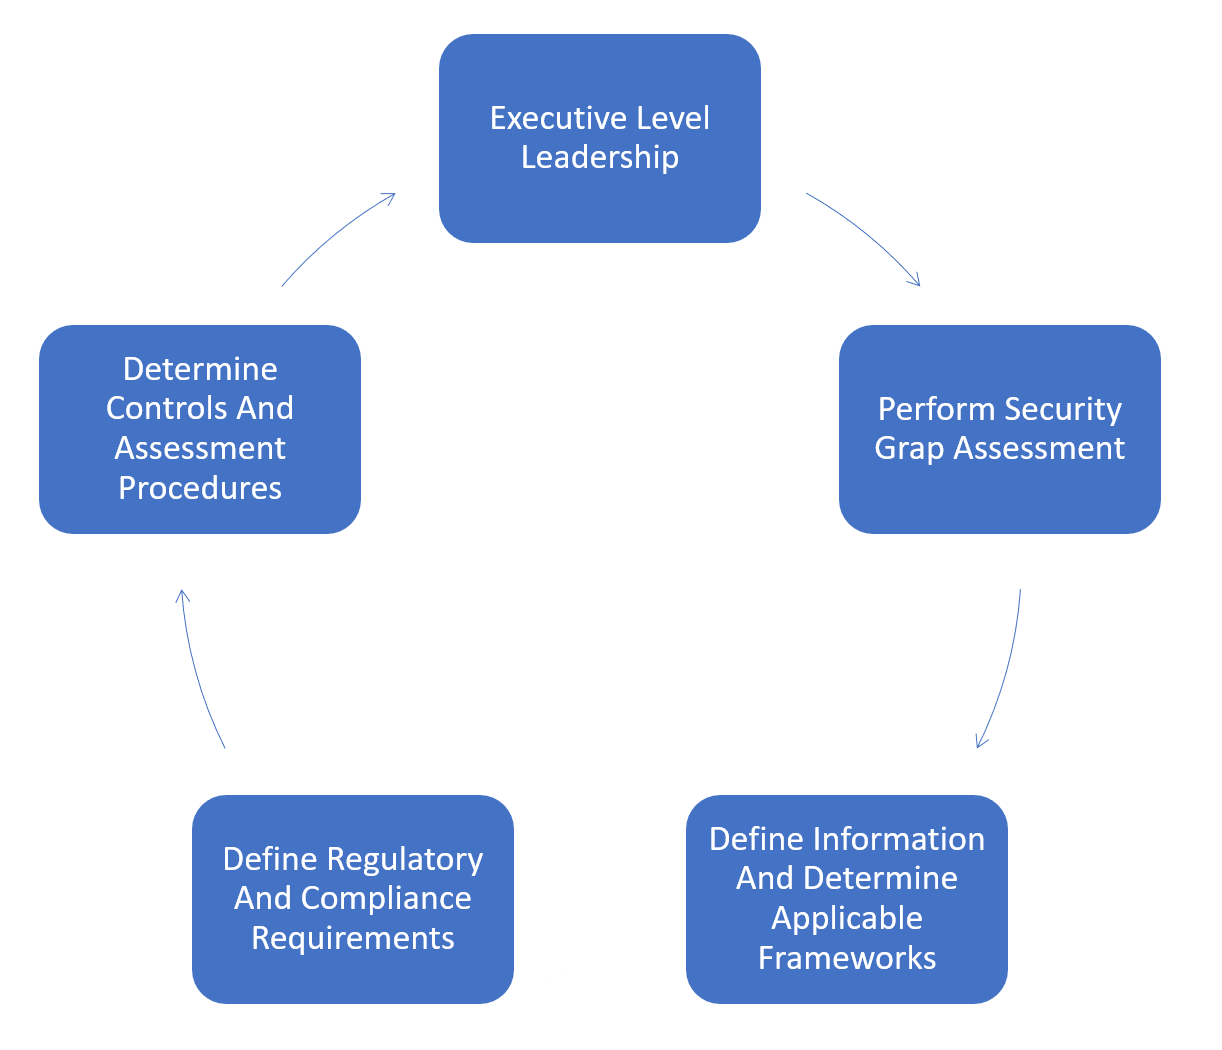 ASSESSMENTS COMPLIANCE AND CONTINUOUS MONITORING